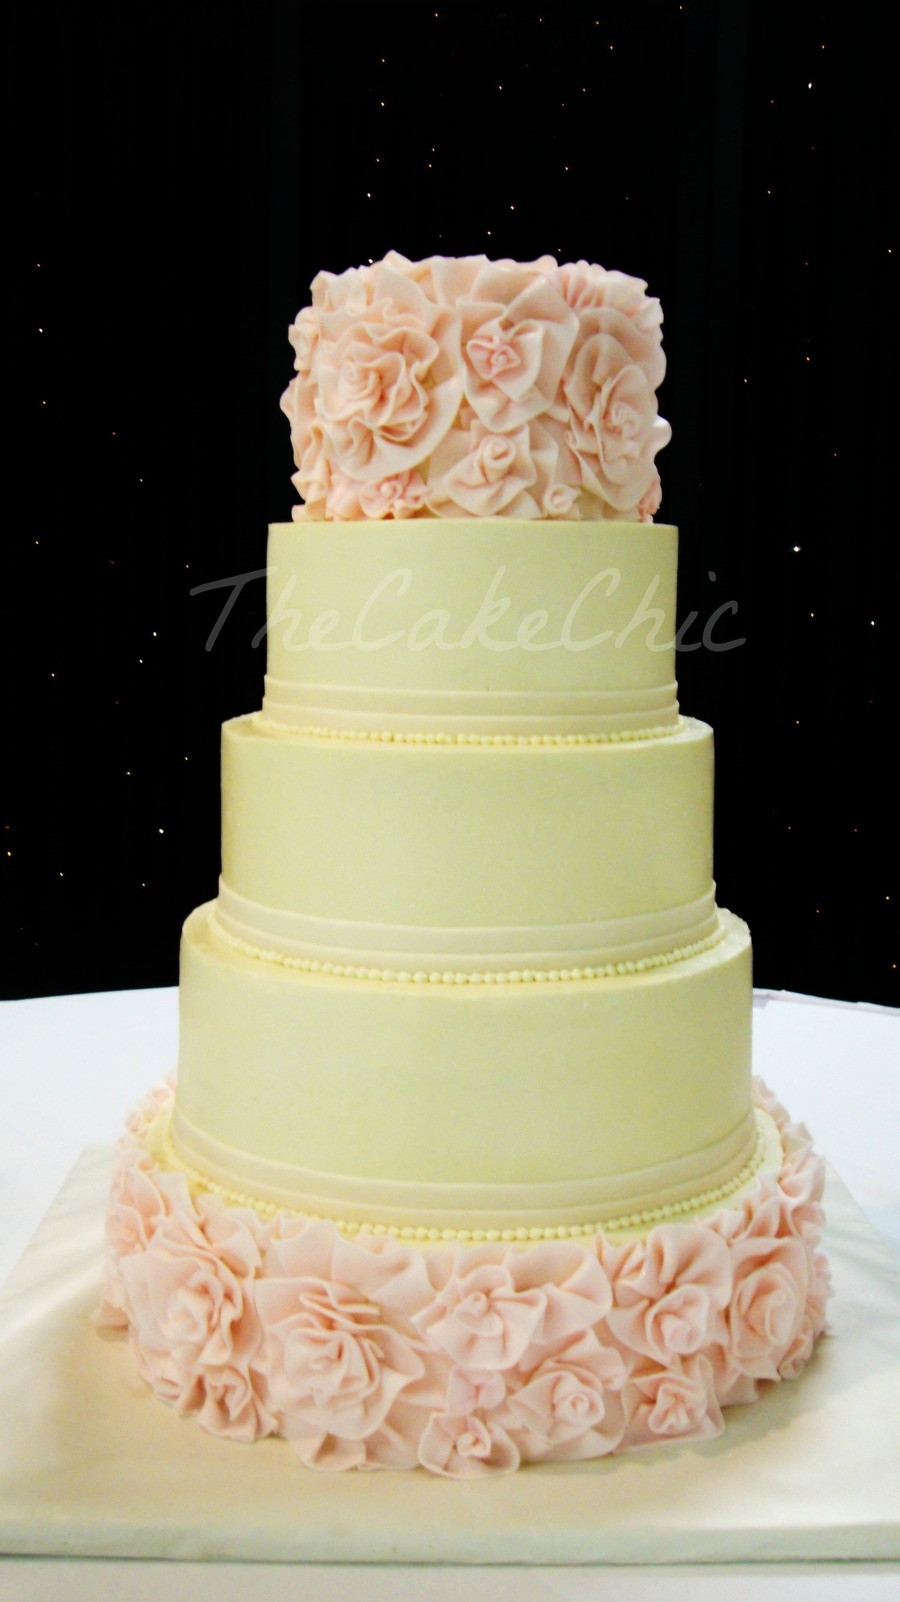 Vanilla Wedding Cakes  Ivory And Blush Flower Ruffle Wedding Cake From Bottom